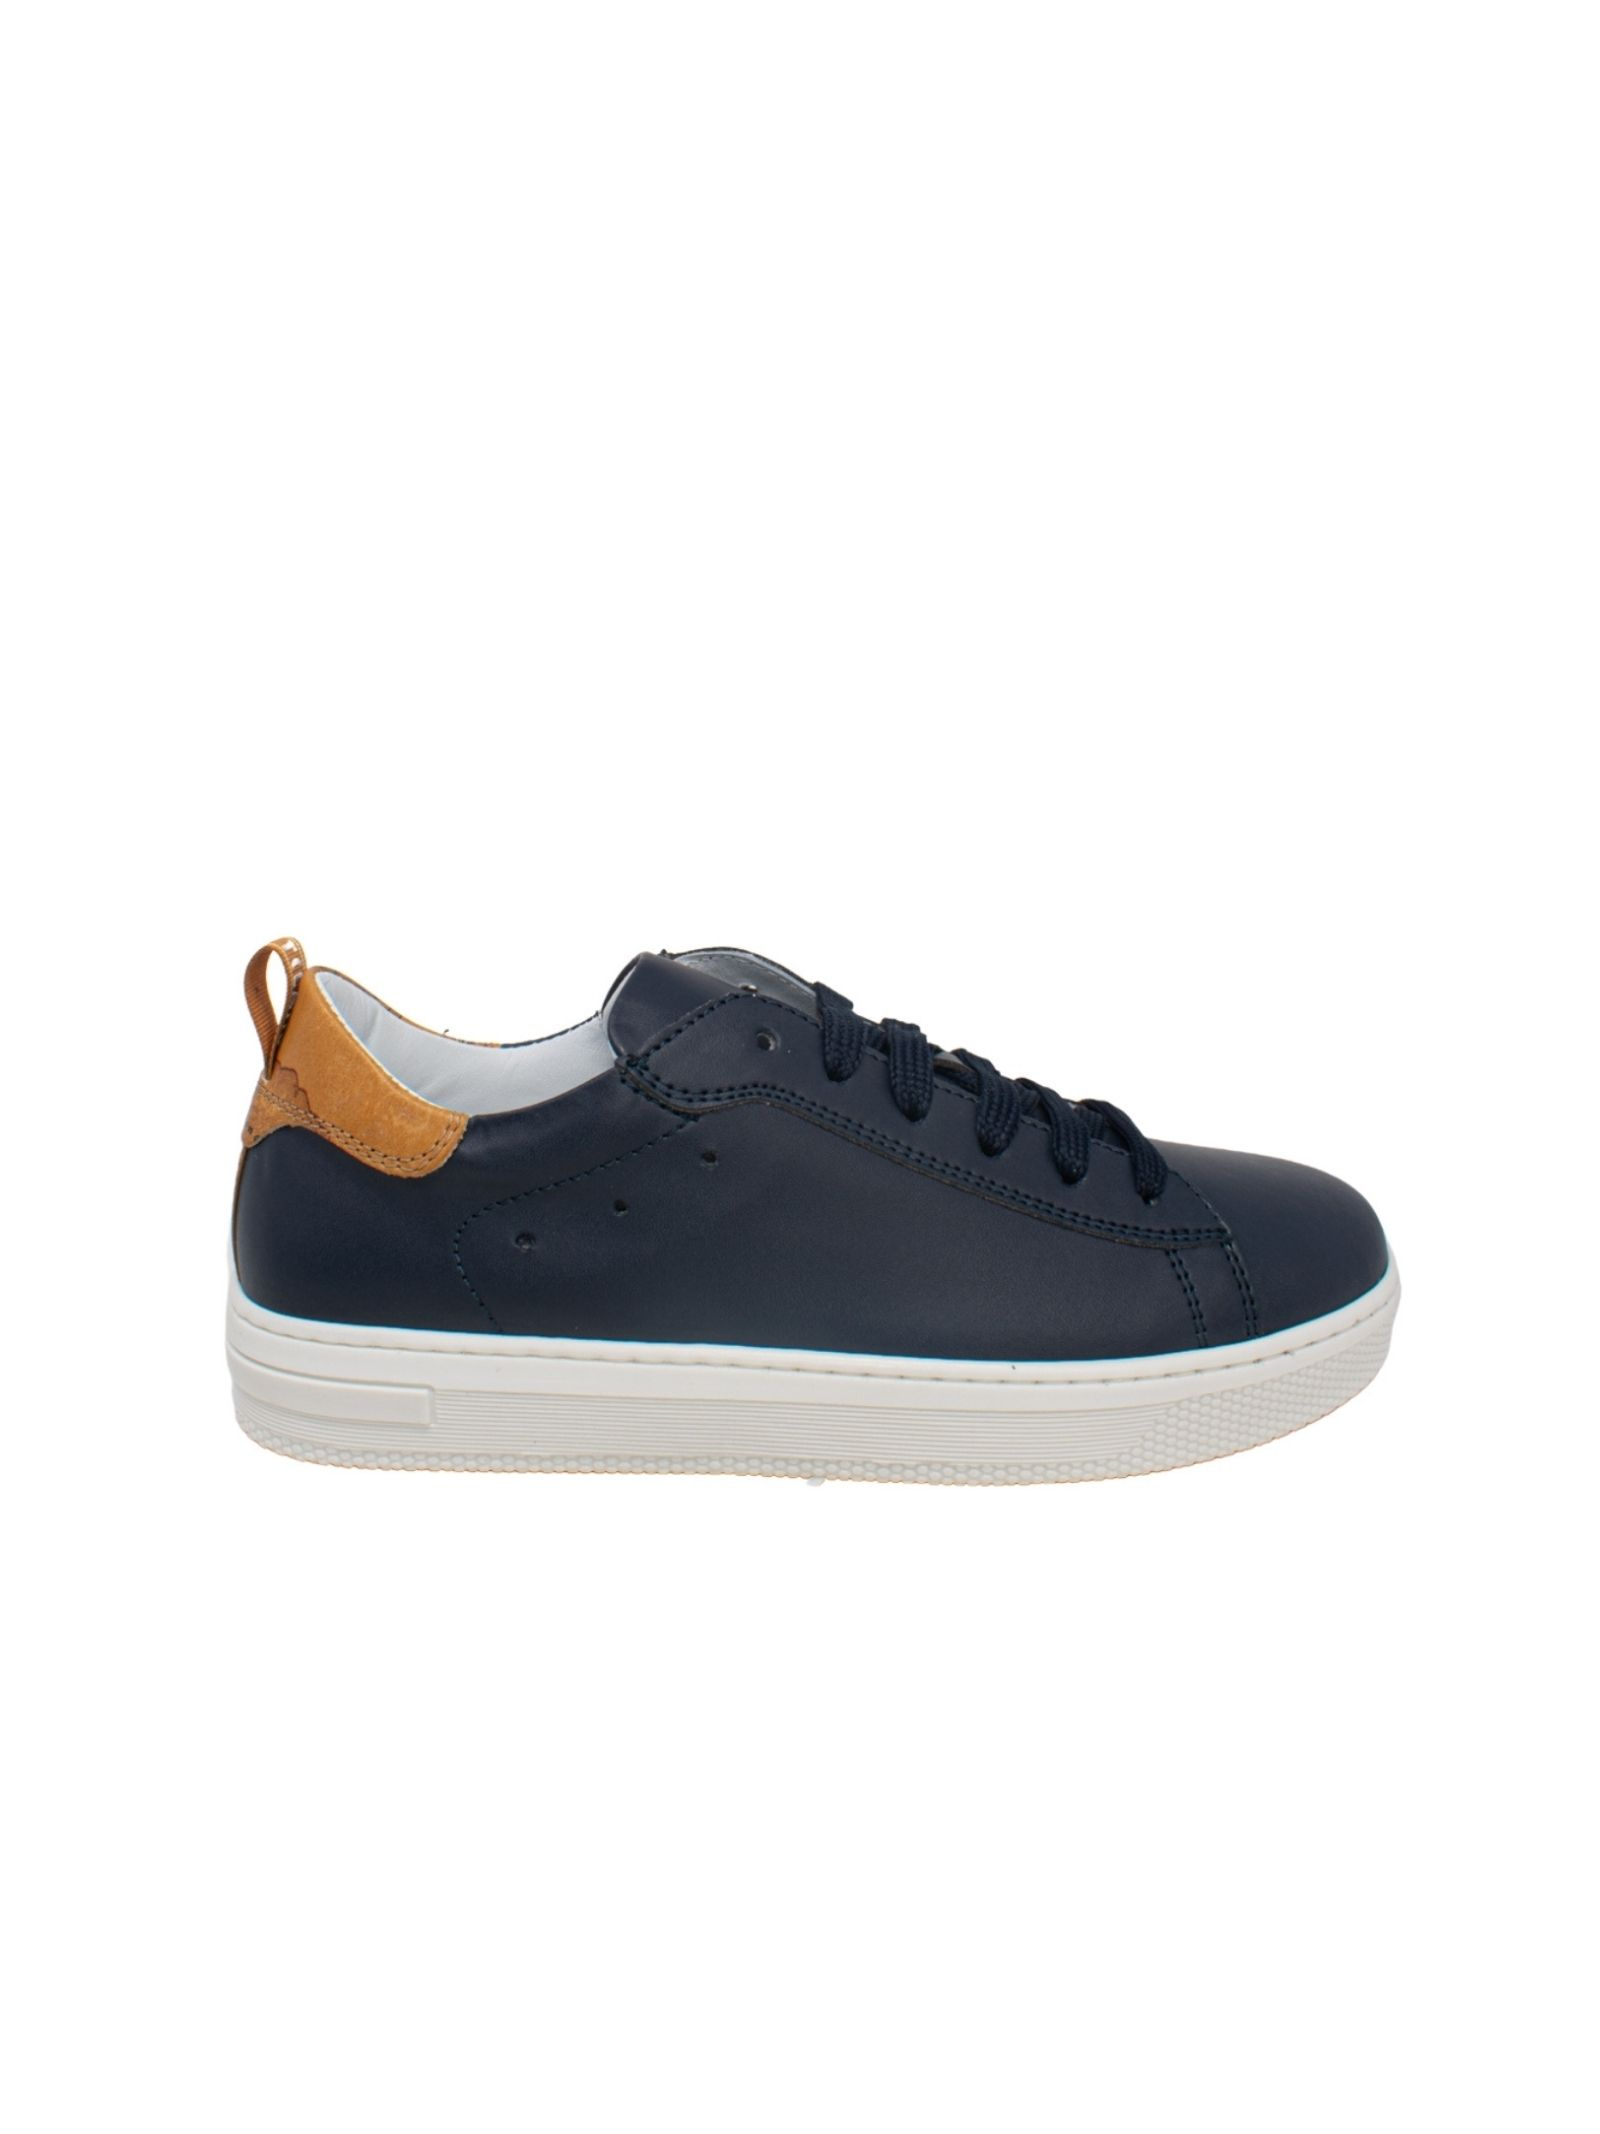 Sneakers Bambino Leather ALVIERO MARTINI 1° CLASSE JUNIOR | Sneakers | 0967X138